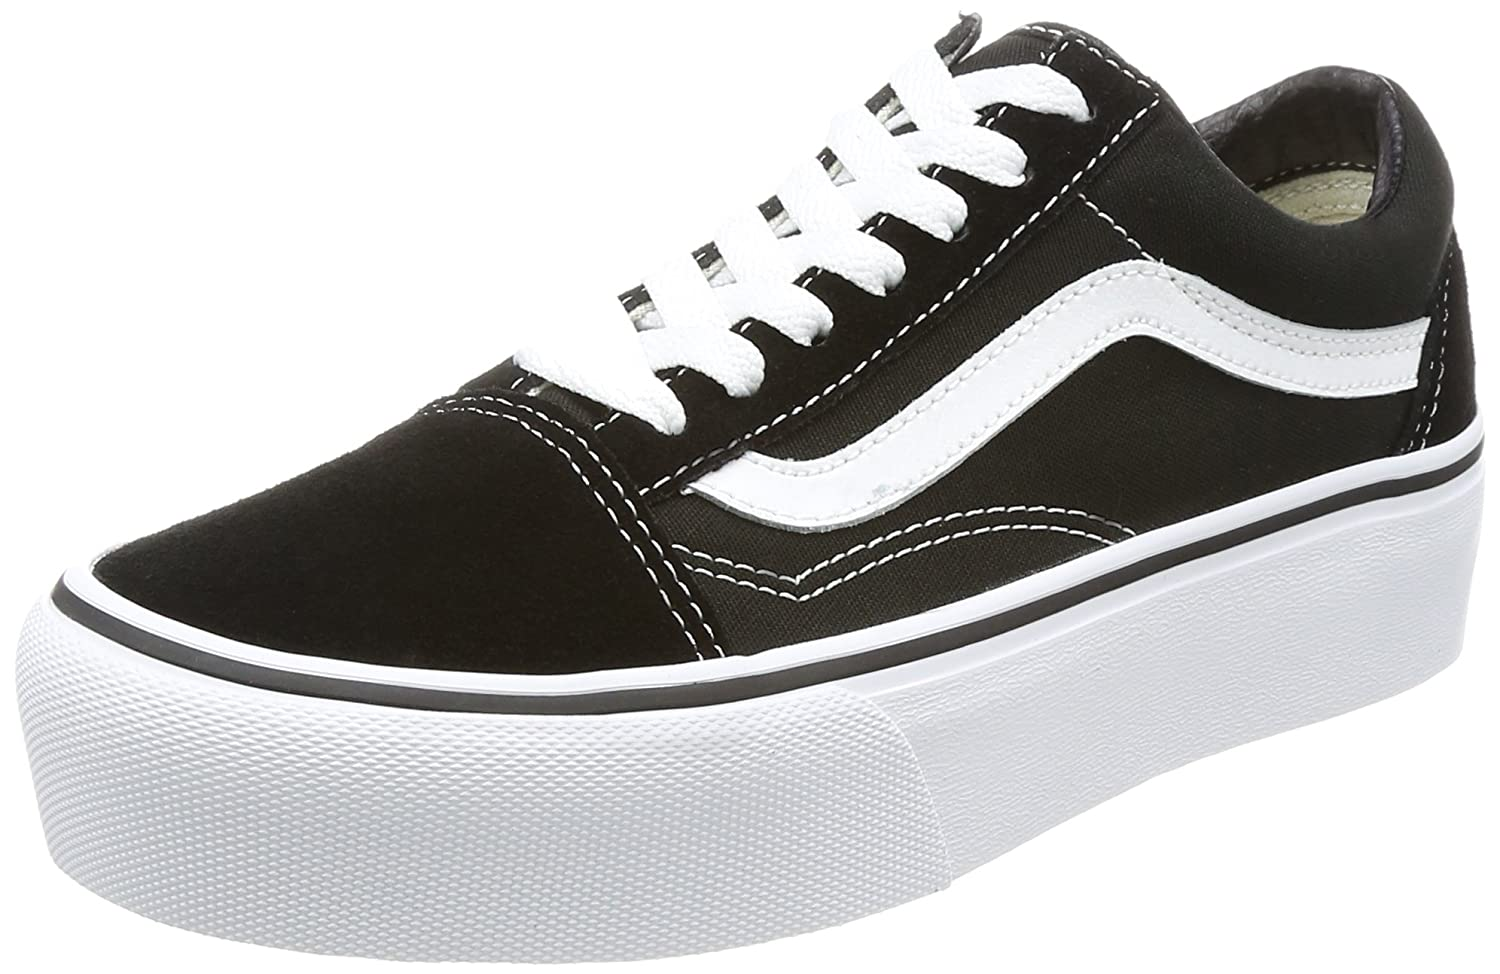 764a056cabd8b Vans Old Skool, Unisex Adults' Low-Top Trainers: Amazon.co.uk: Shoes & Bags